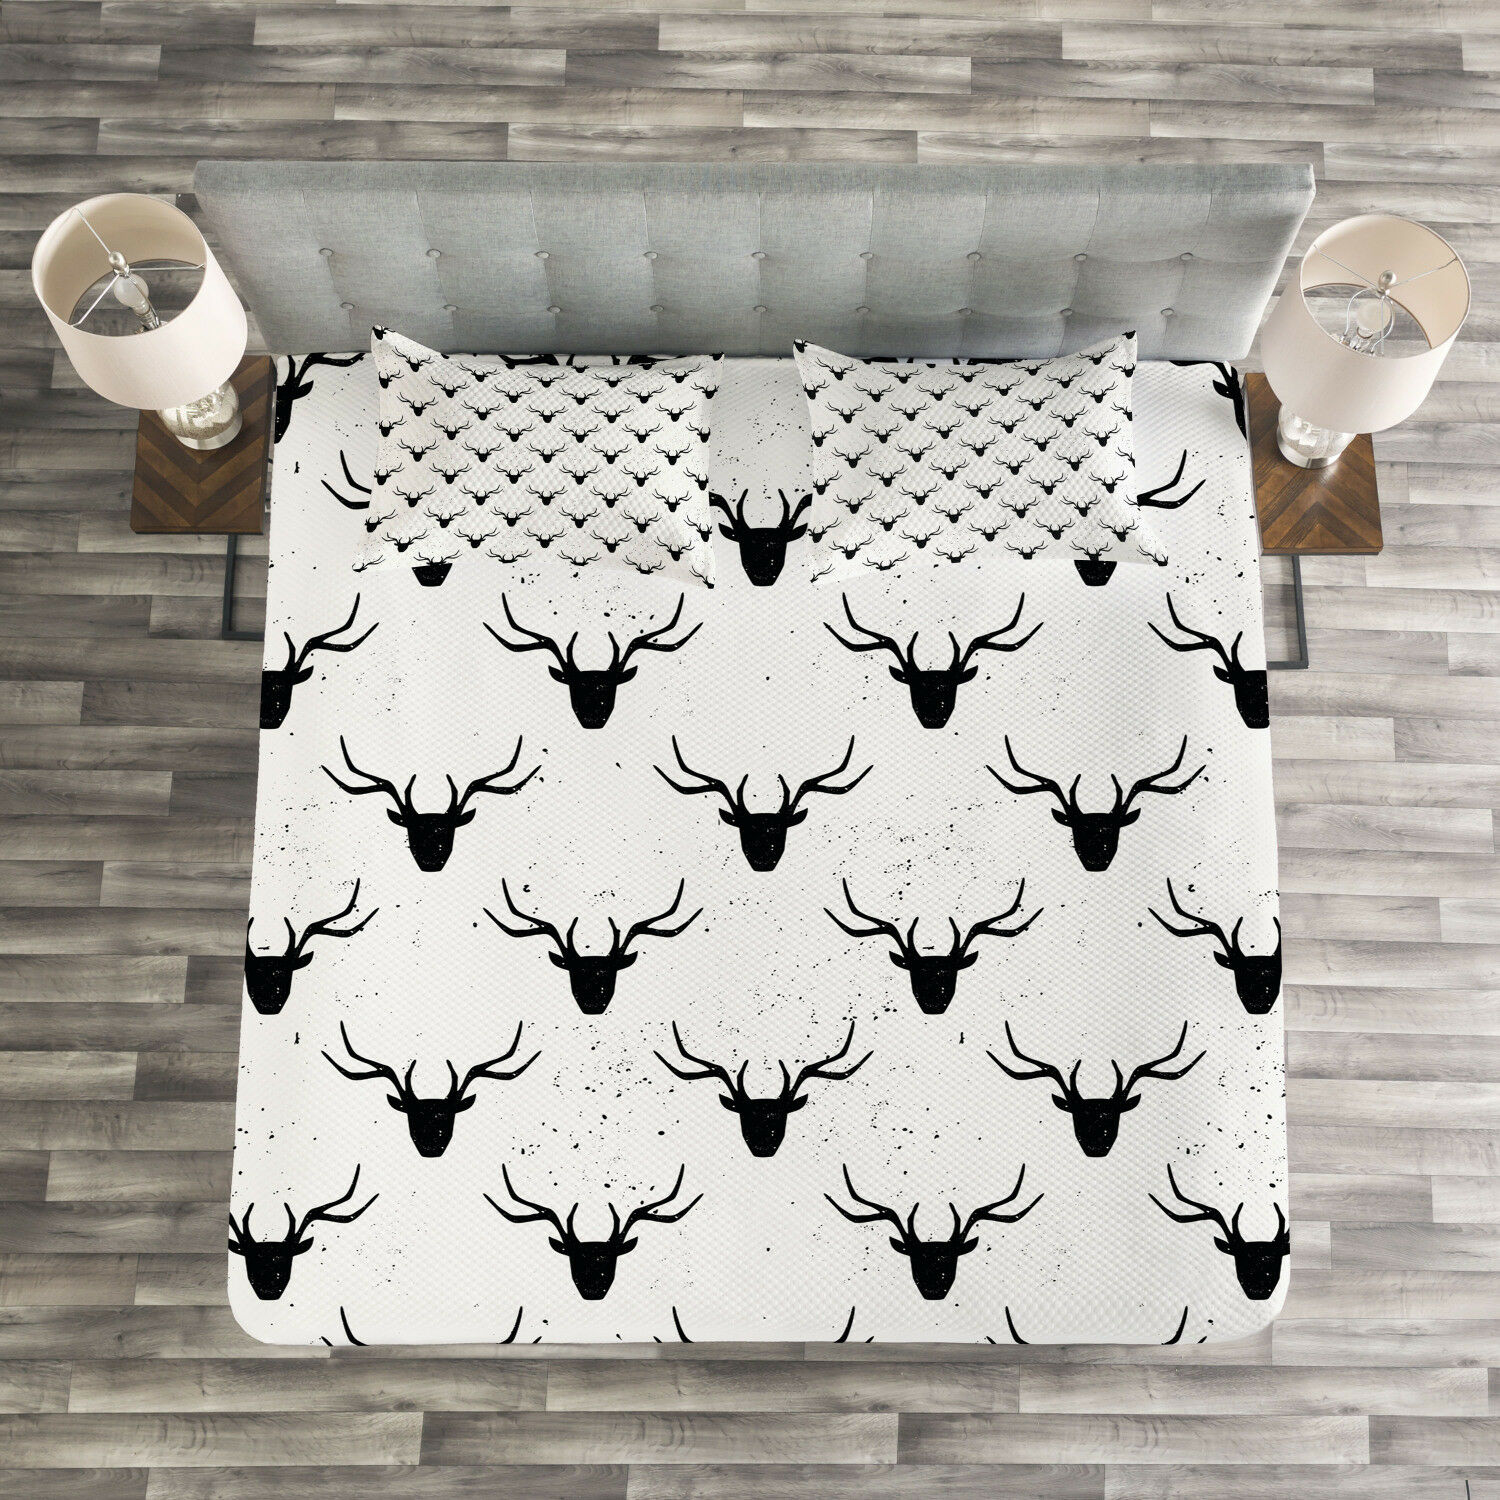 Deer Quilted Bedspread & Pillow Shams Set, Animal Head Silhouettes Print